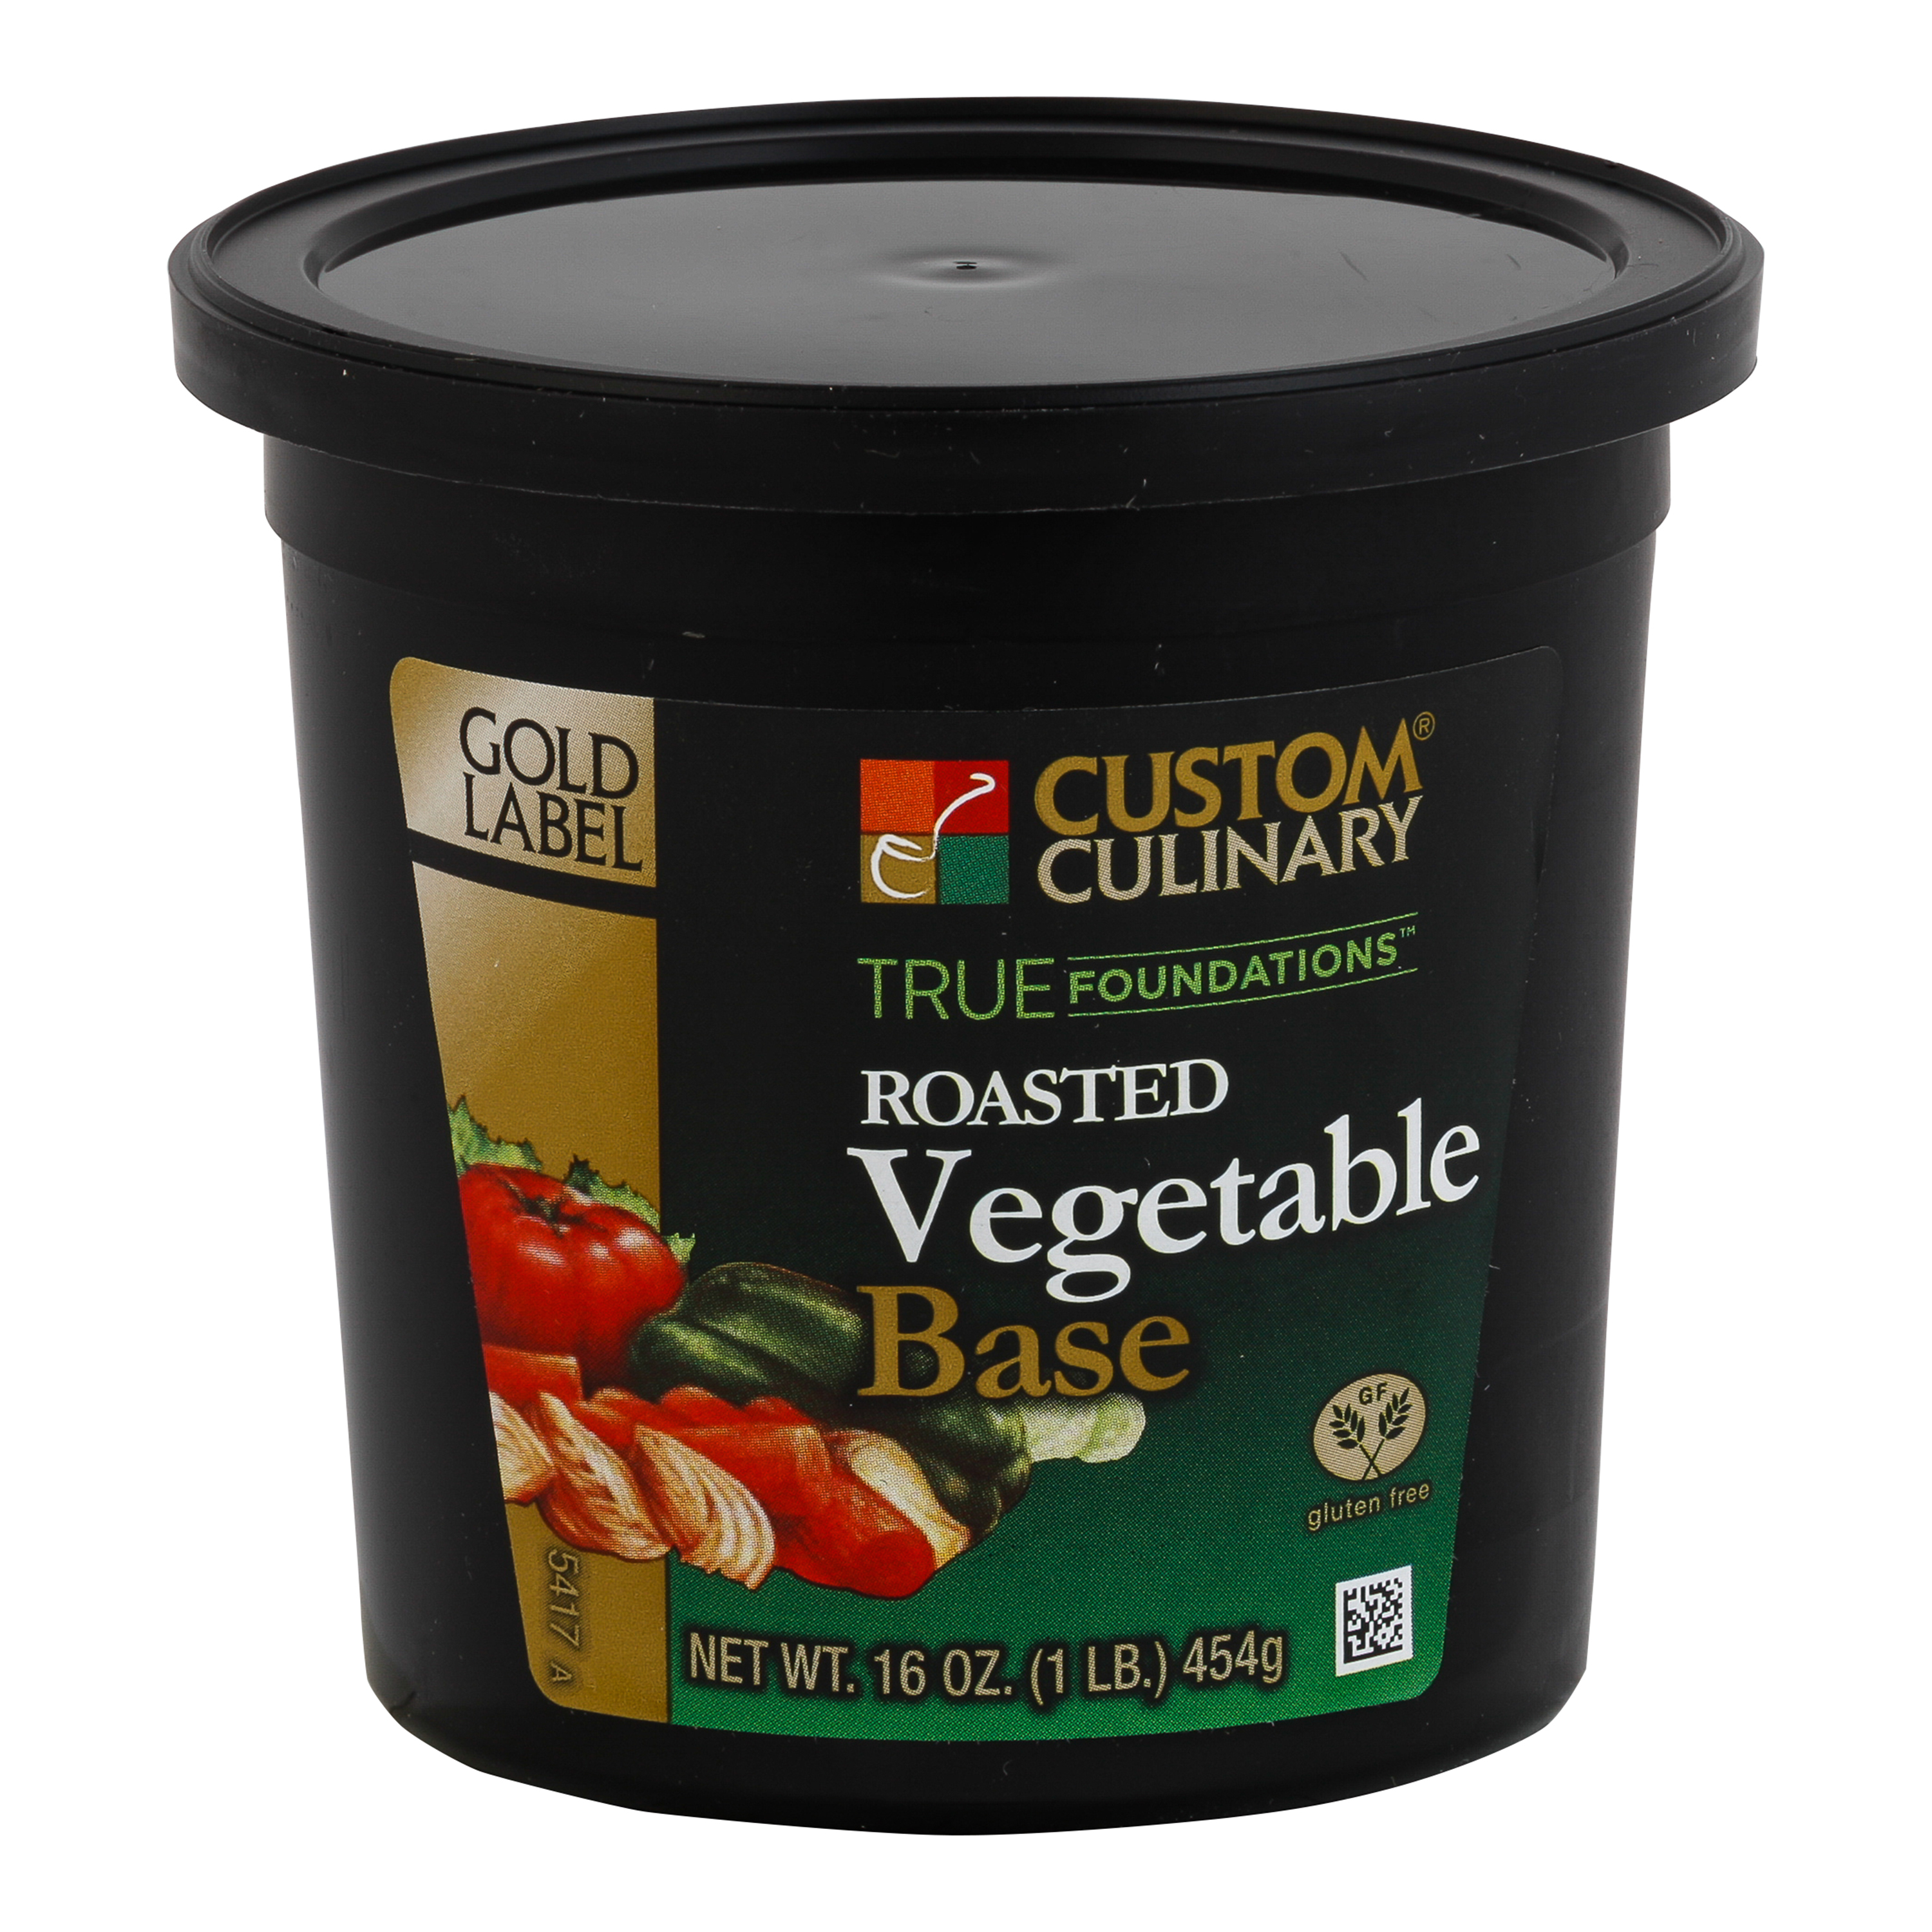 5417 - GOLD LABEL Roasted Vegetable Base No MSG added Gluten Free Clean Label